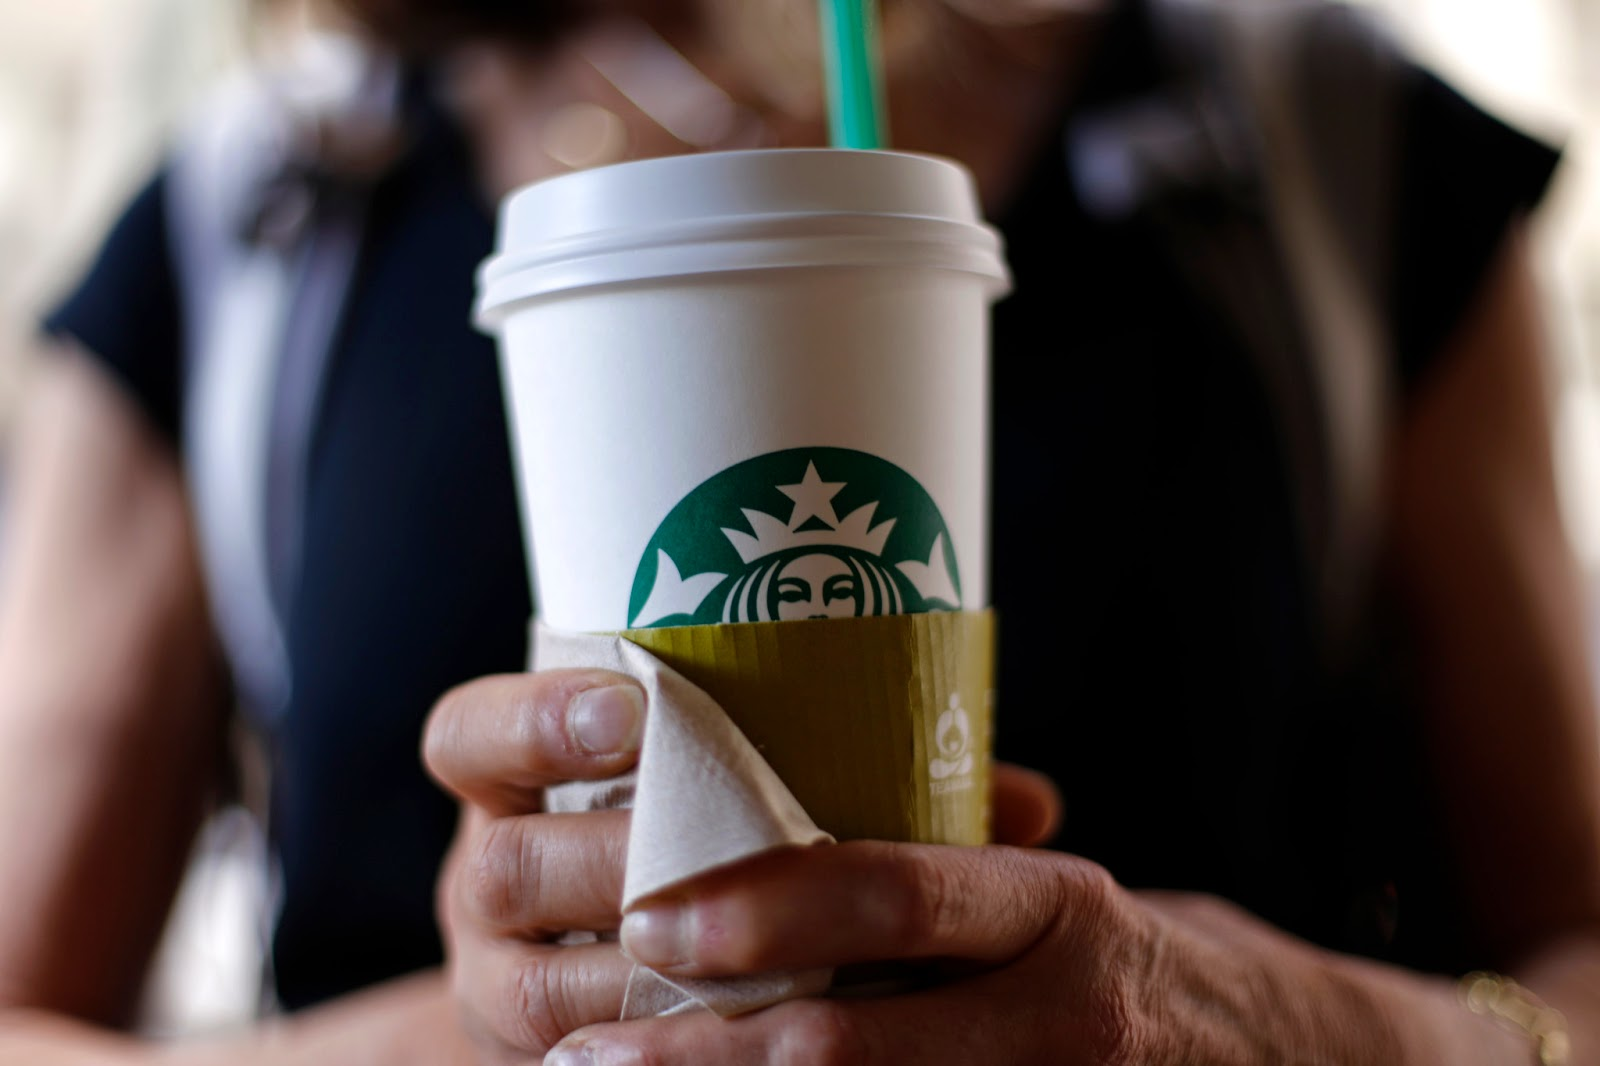 Starbucks plans delivery service in 2015